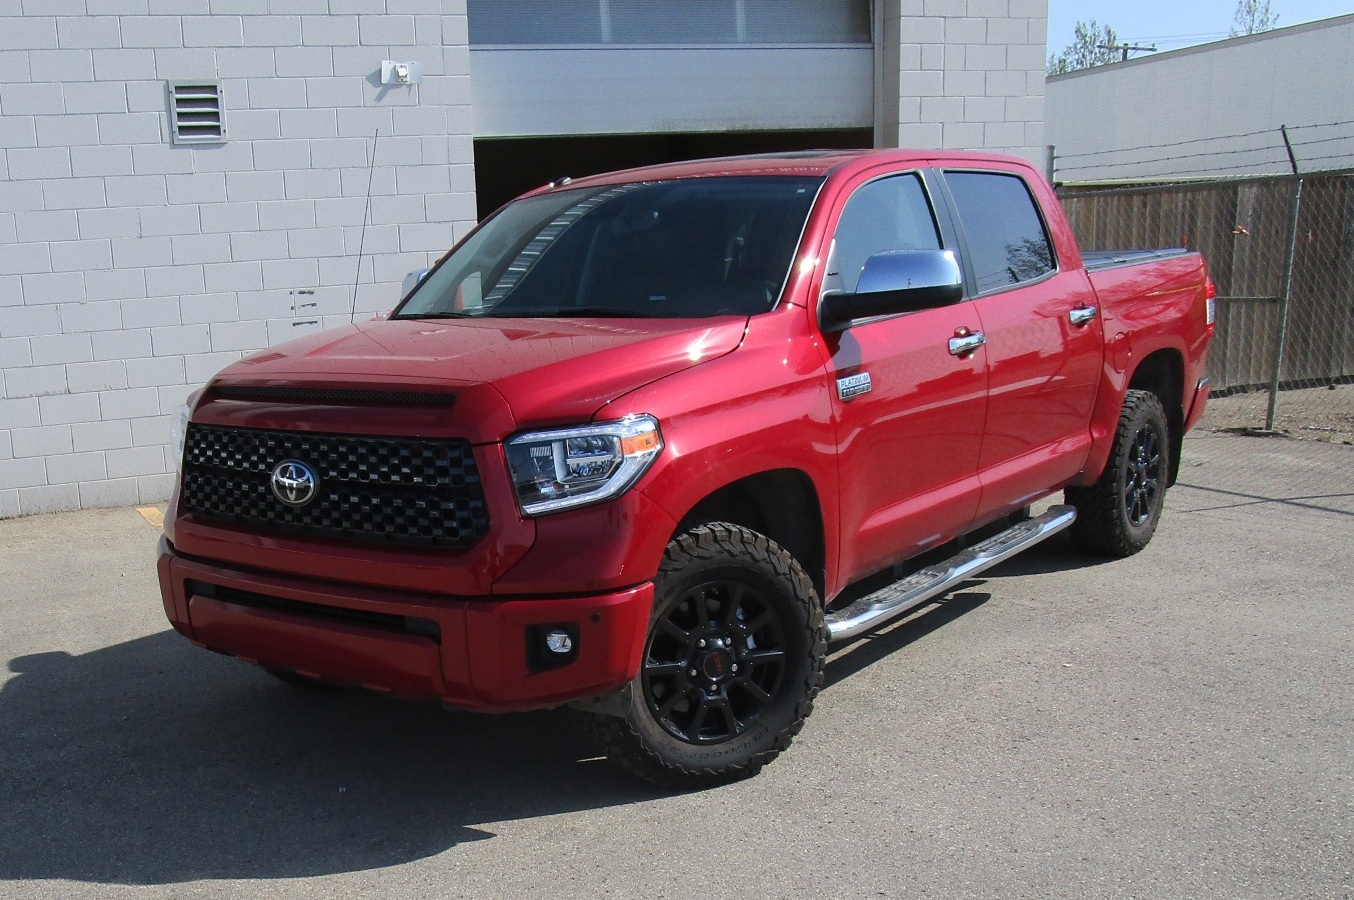 Tundra Platinum – Combining Luxury & Serious Off-Road Capability